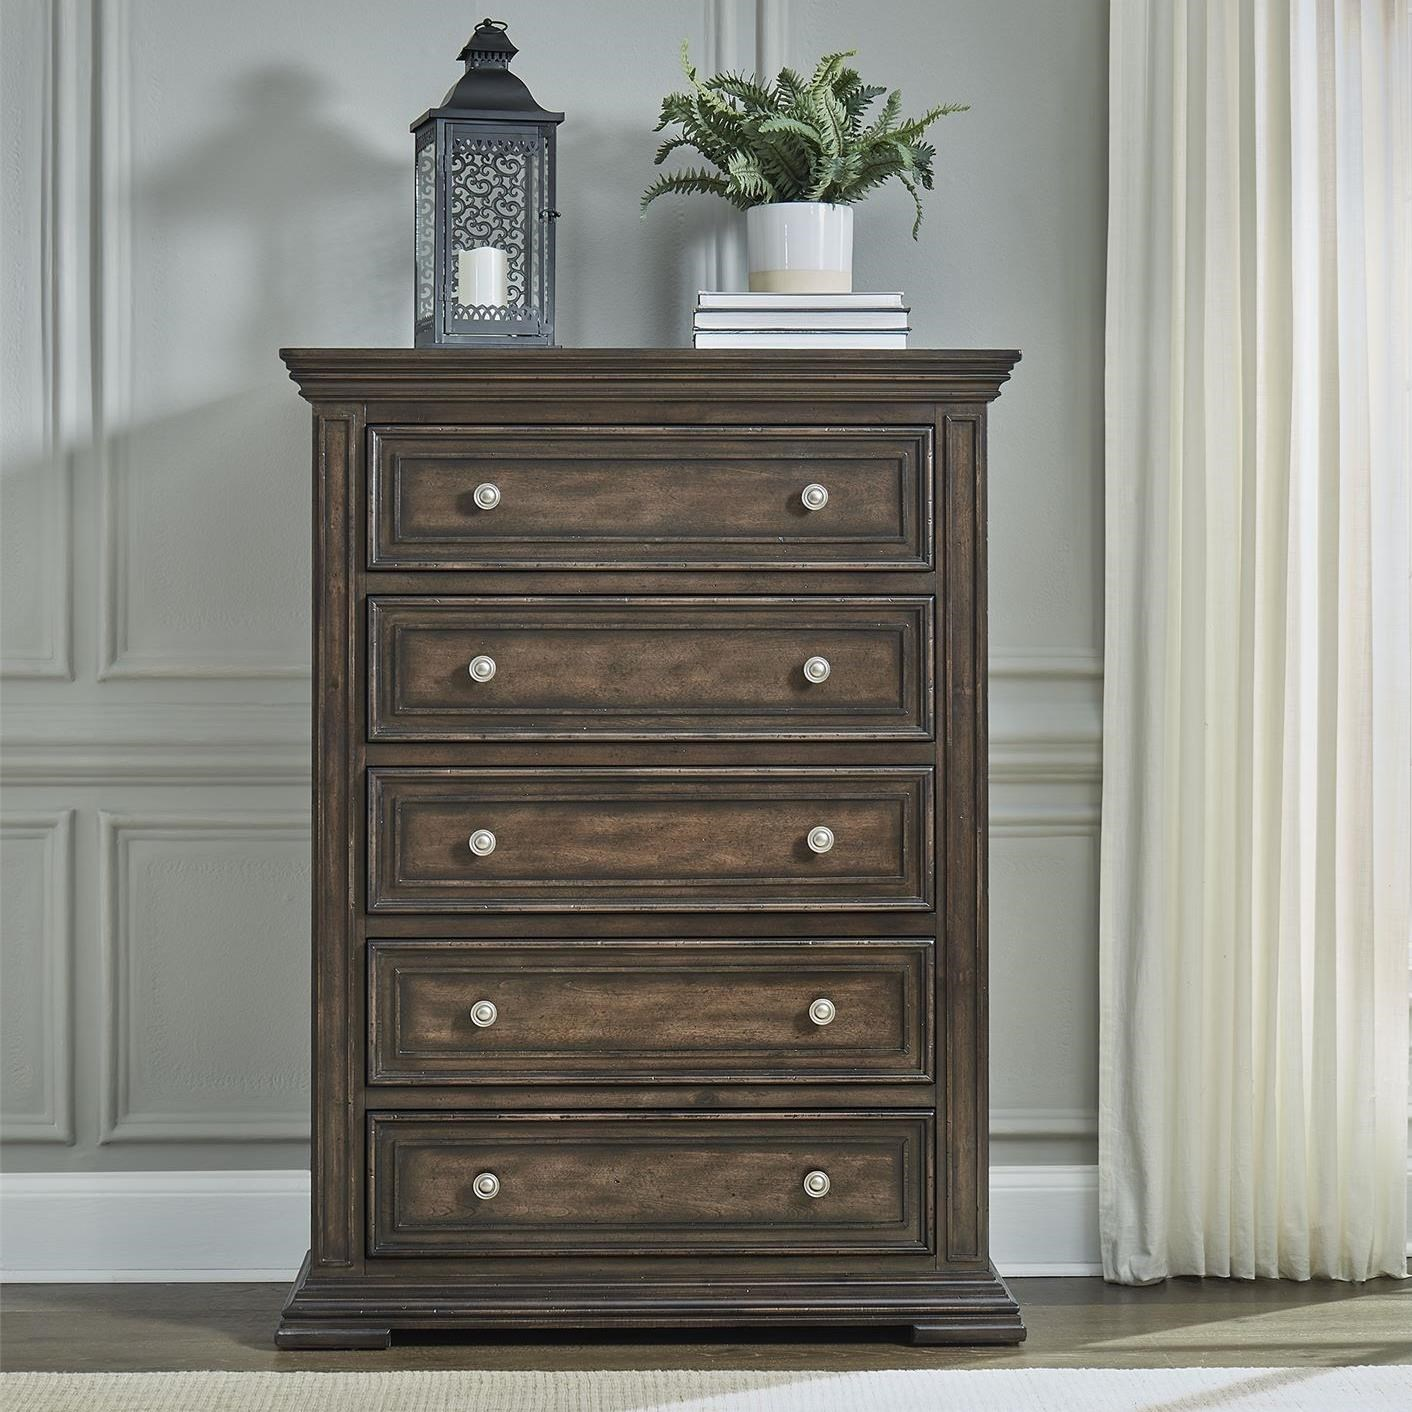 Big Valley 5-Drawer Chest by Liberty Furniture at Van Hill Furniture